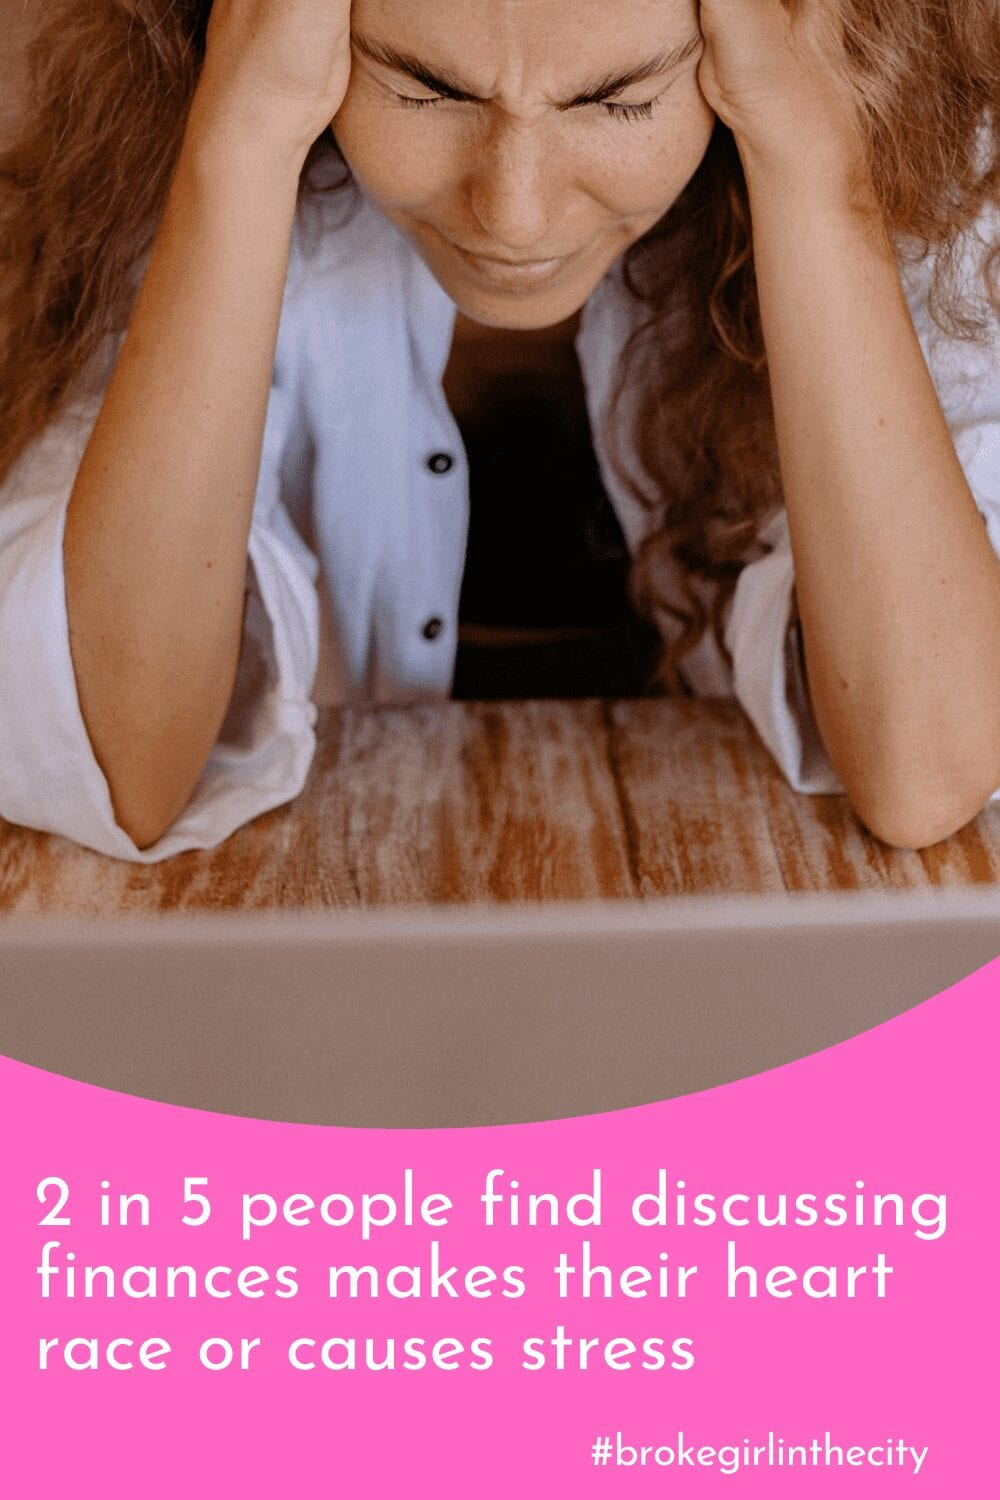 2 in 5 people find discussing finances leads to stress